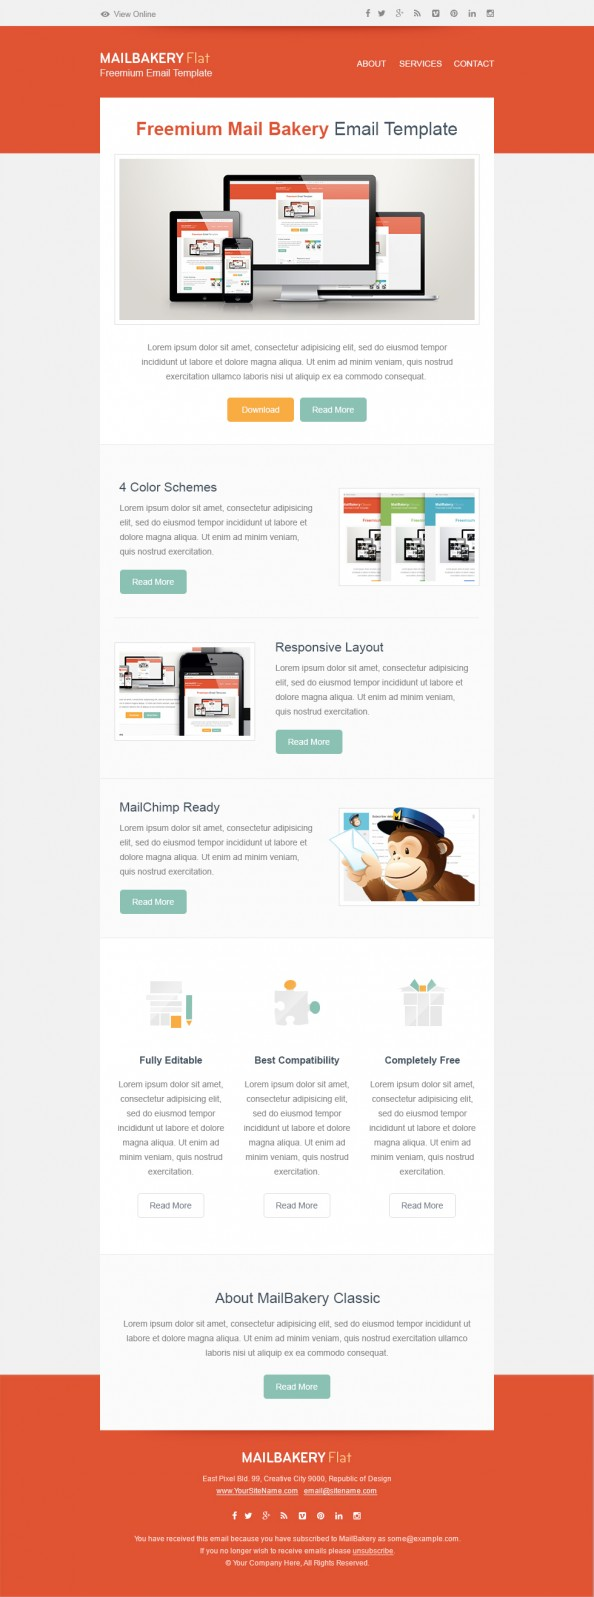 Freemium Mail Bakery Email Template